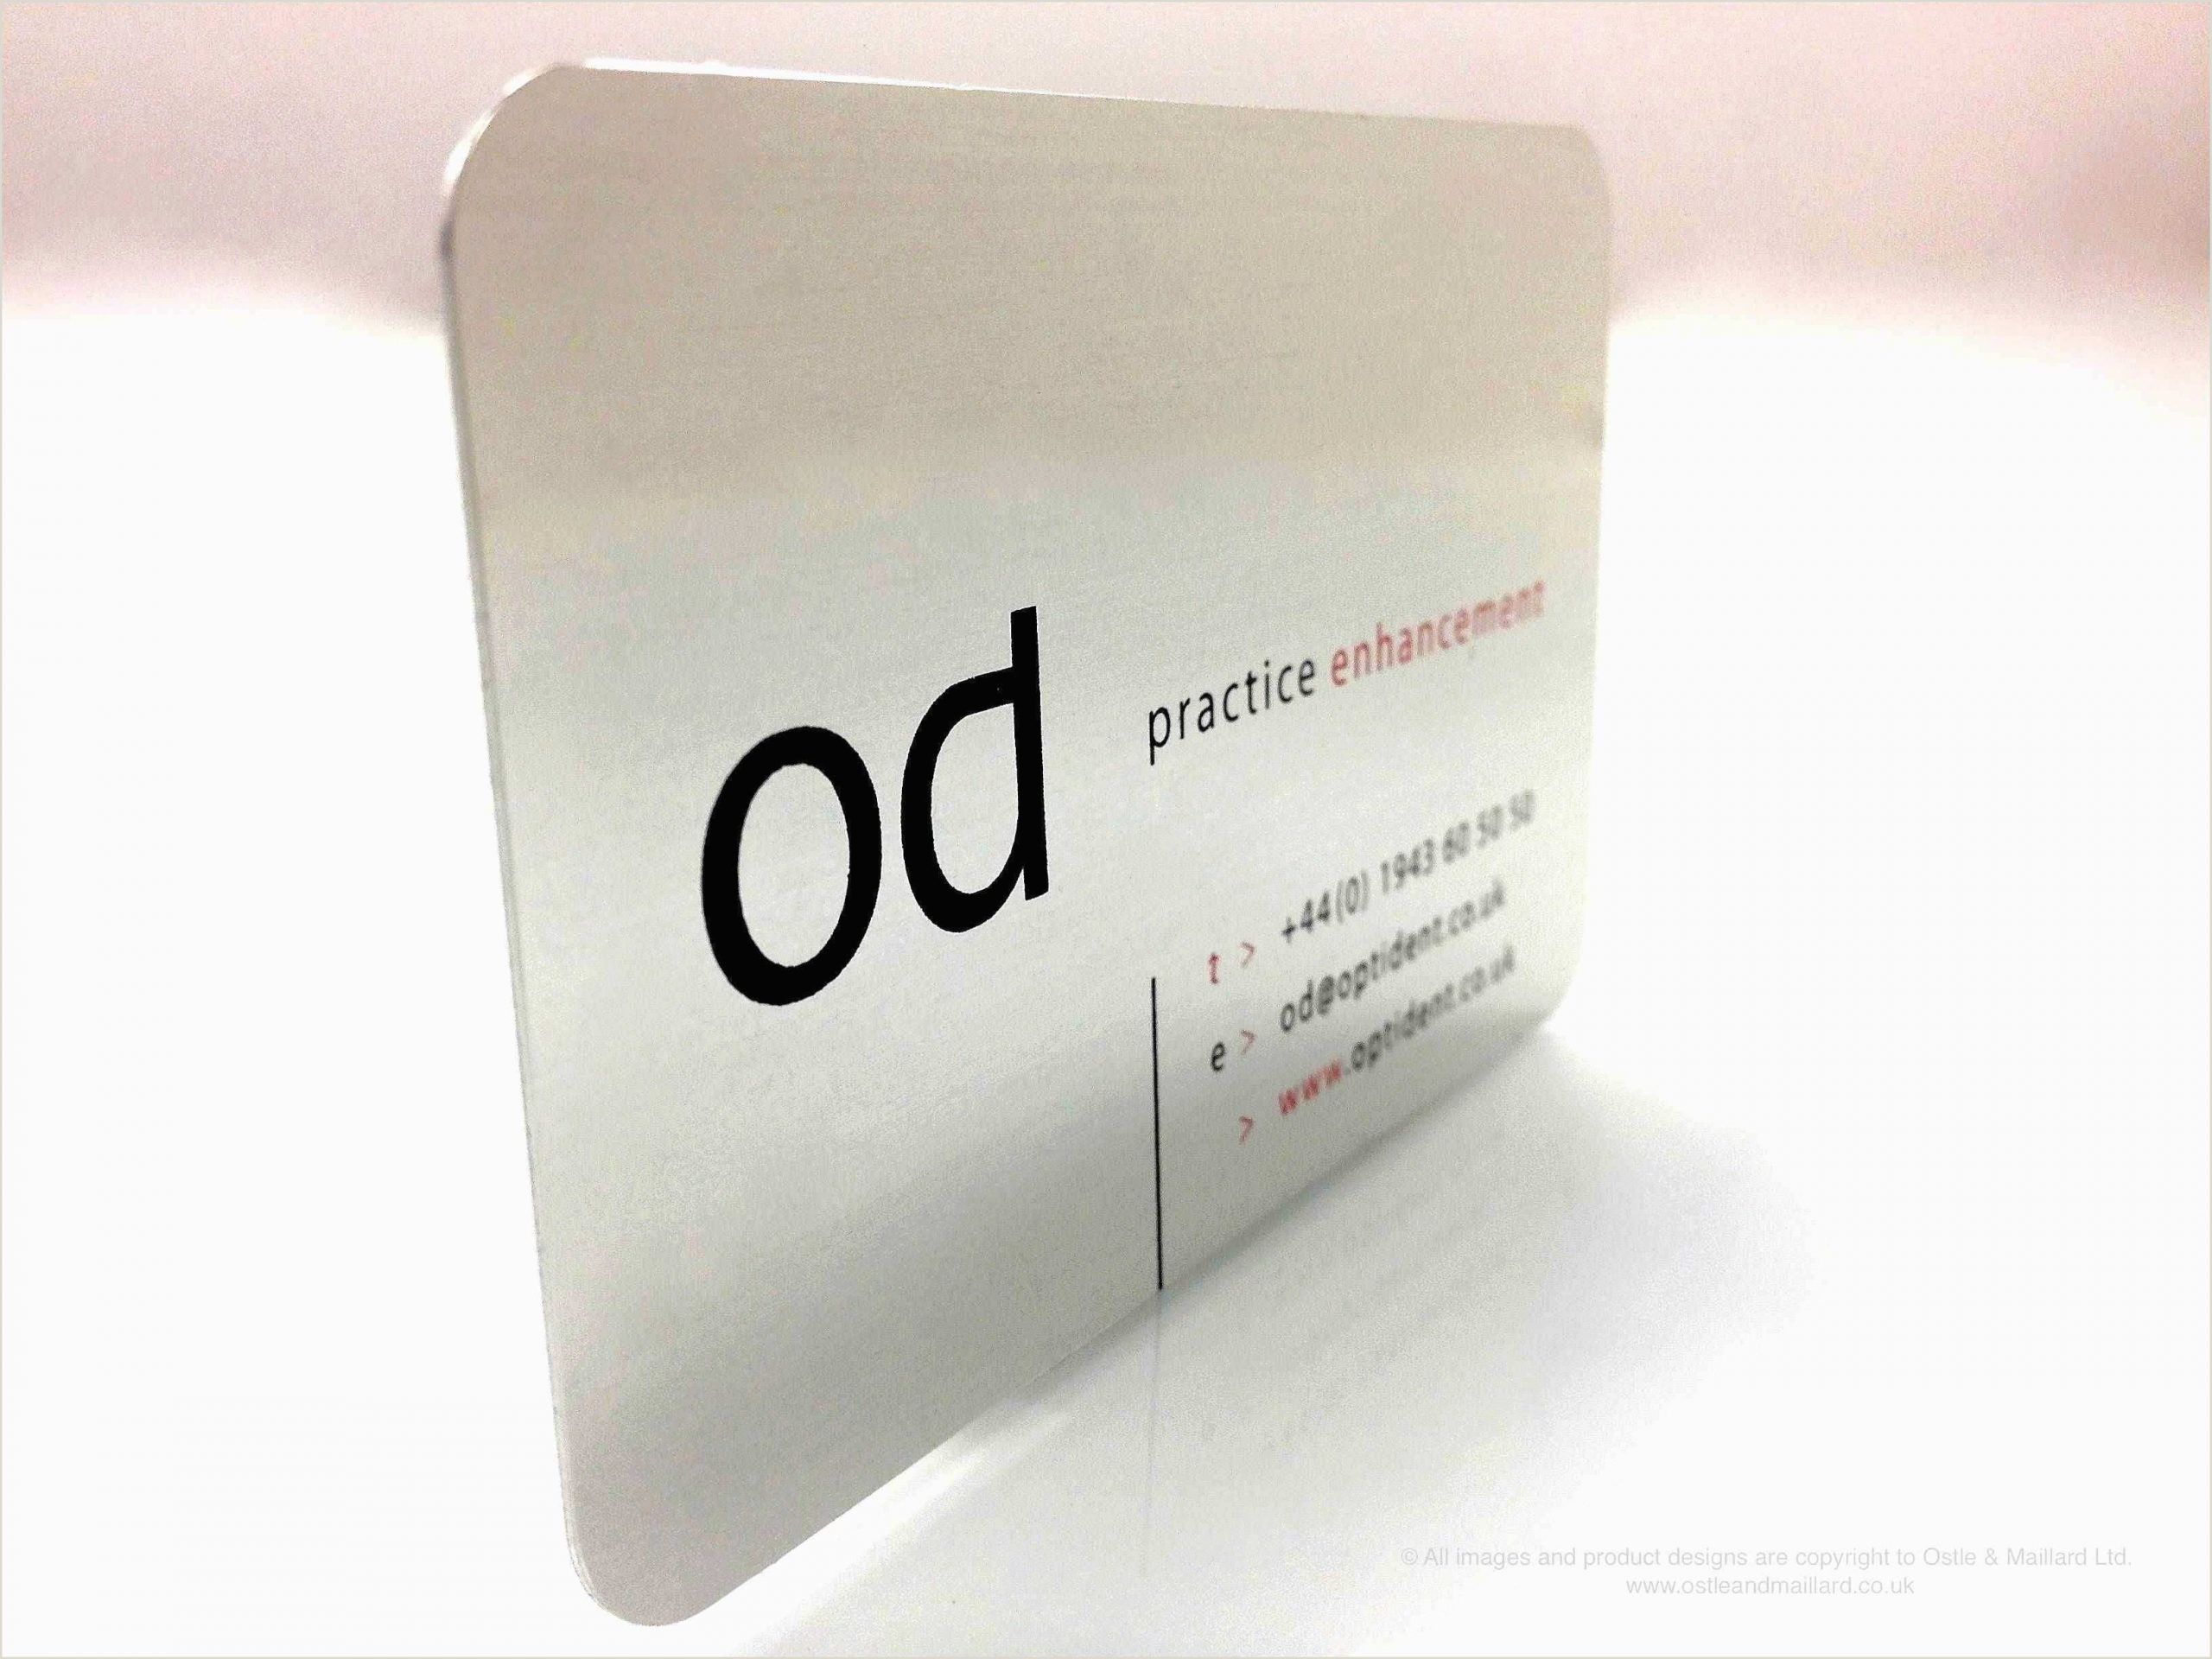 Word Templates For Business Cards Business Card Template Word 2020 Addictionary